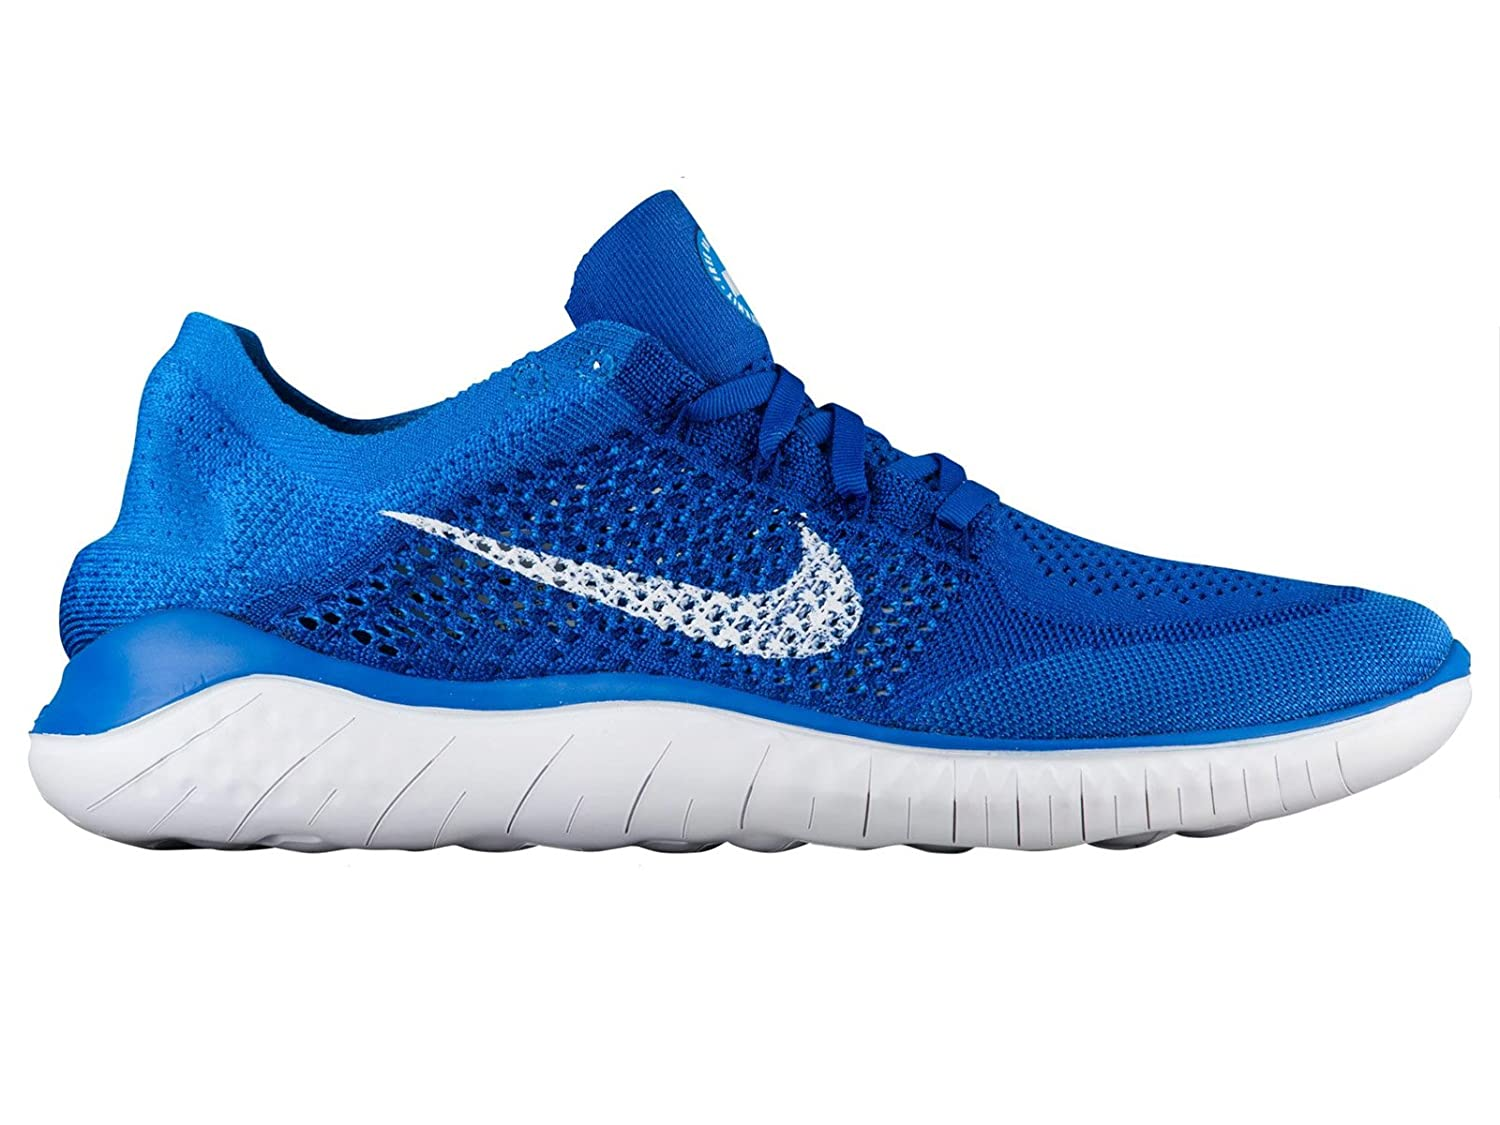 release date 5bebd 2173c Amazon.com   NIKE Men s Free Rn Flyknit 2018 Game Royal White Photo Blue  Nylon Running Shoes 10.5 D(M) US   Road Running